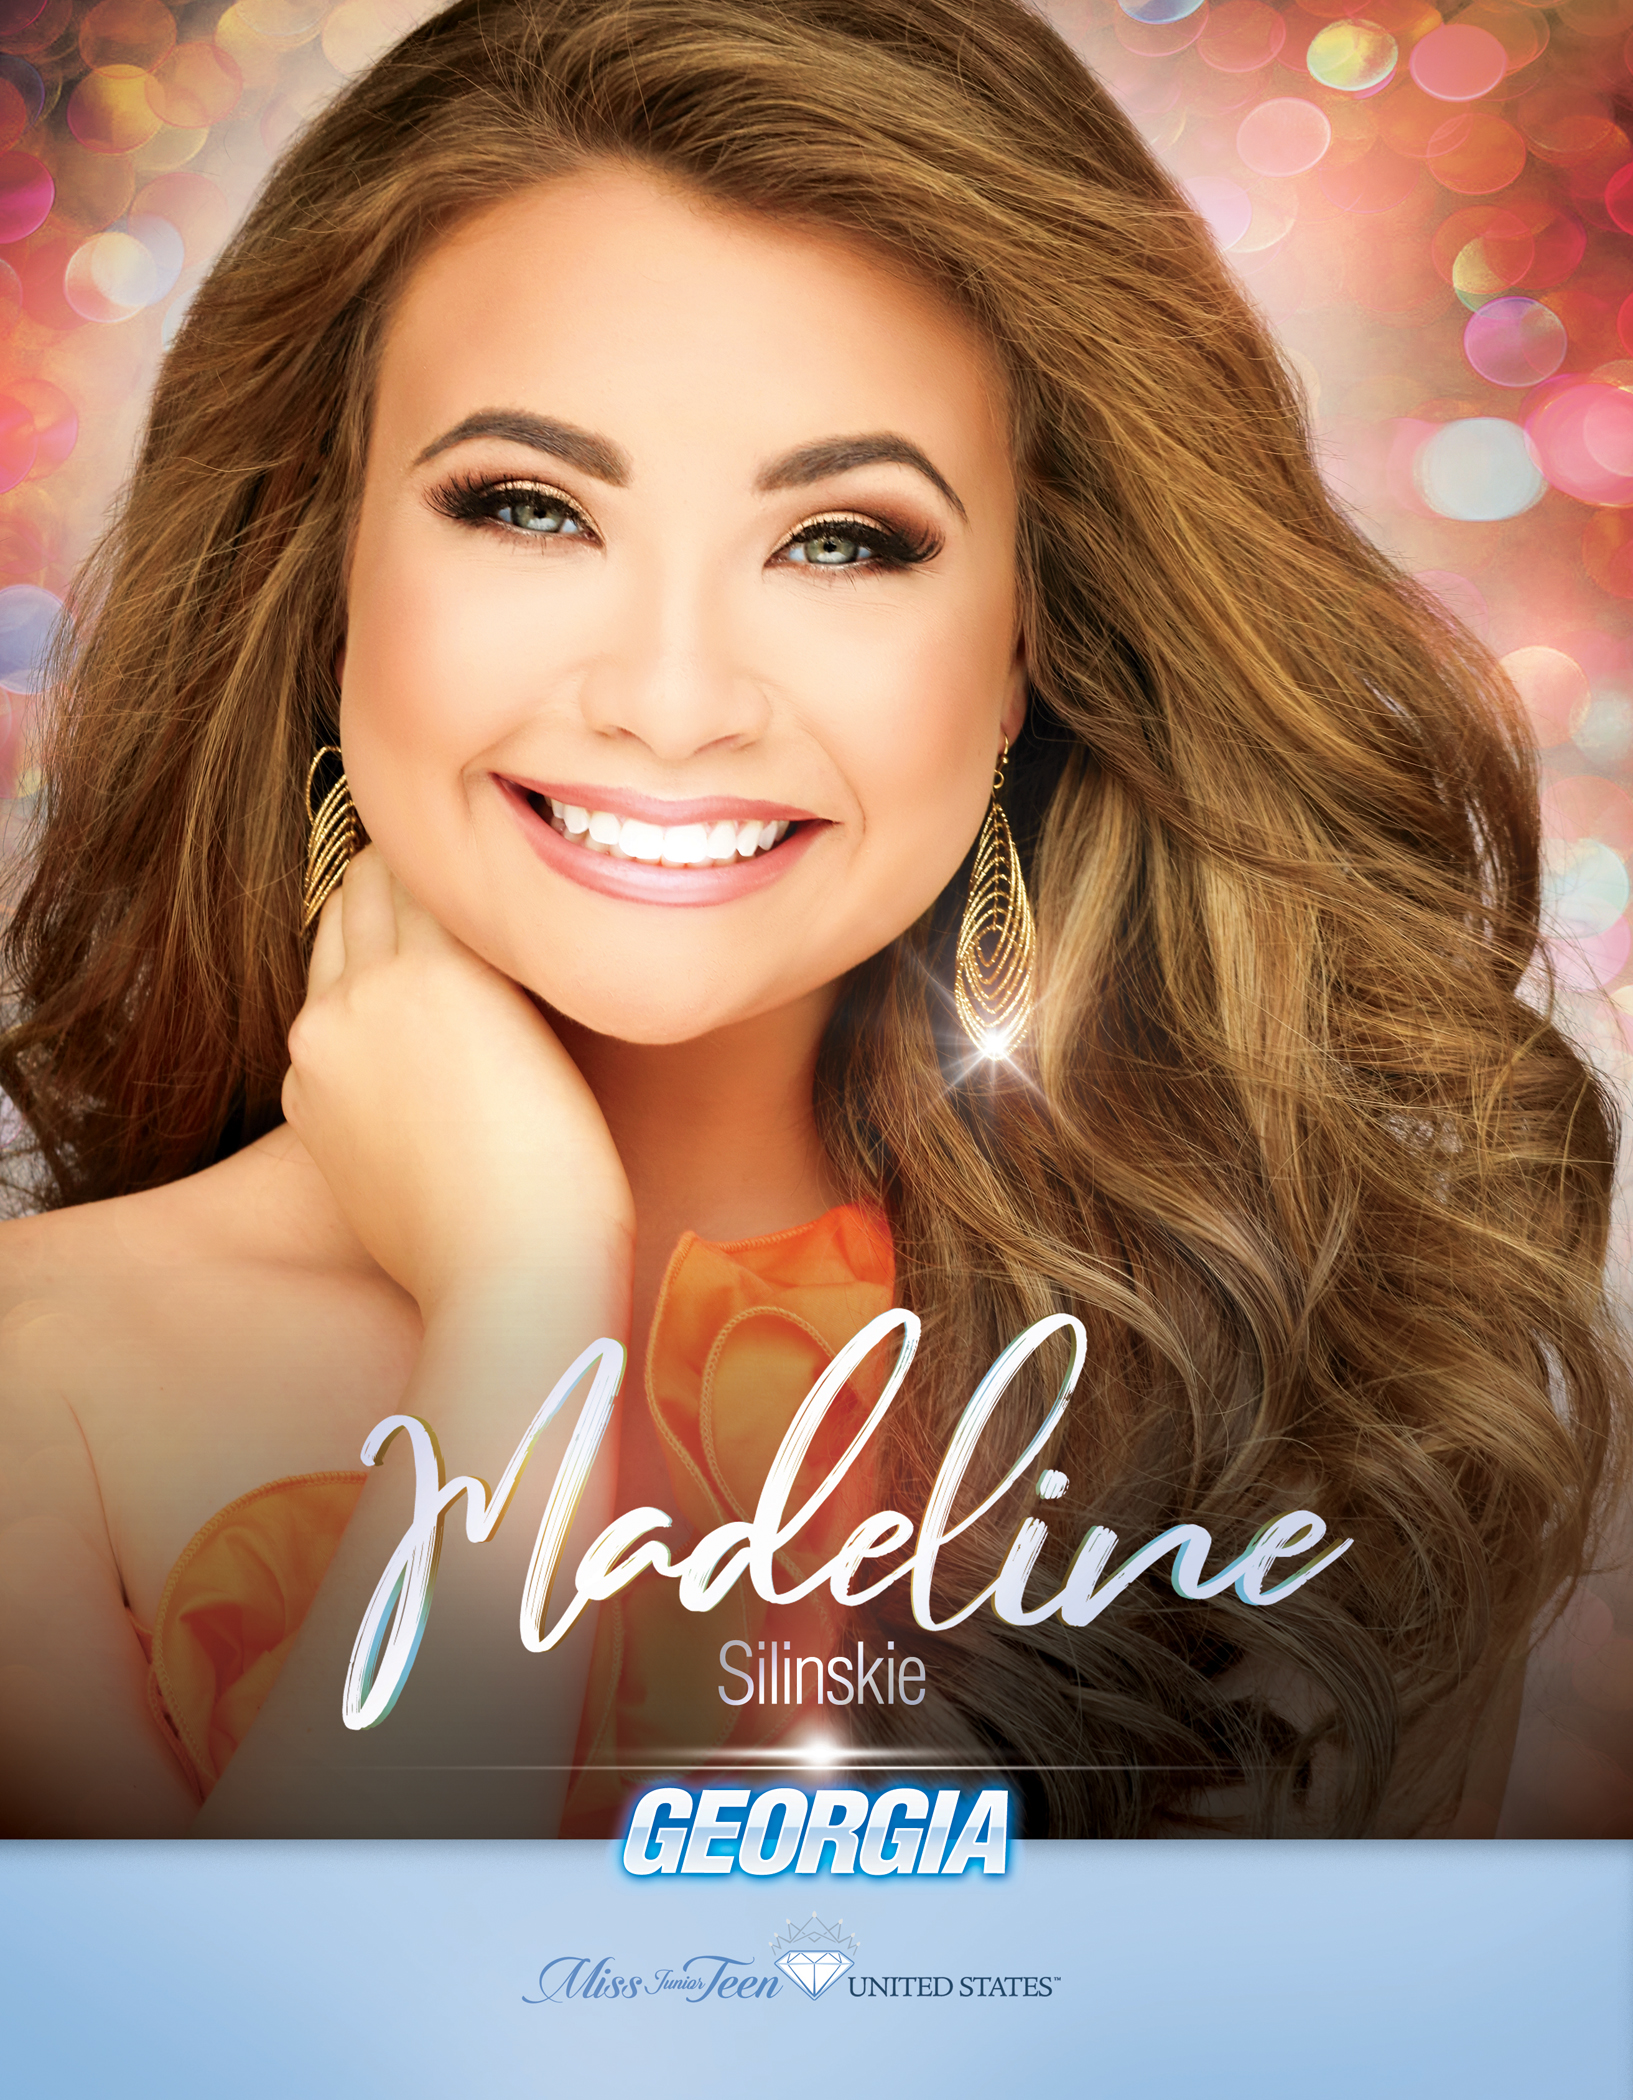 Madeline Silinskie Miss Junior Teen Georgia United States - 2019